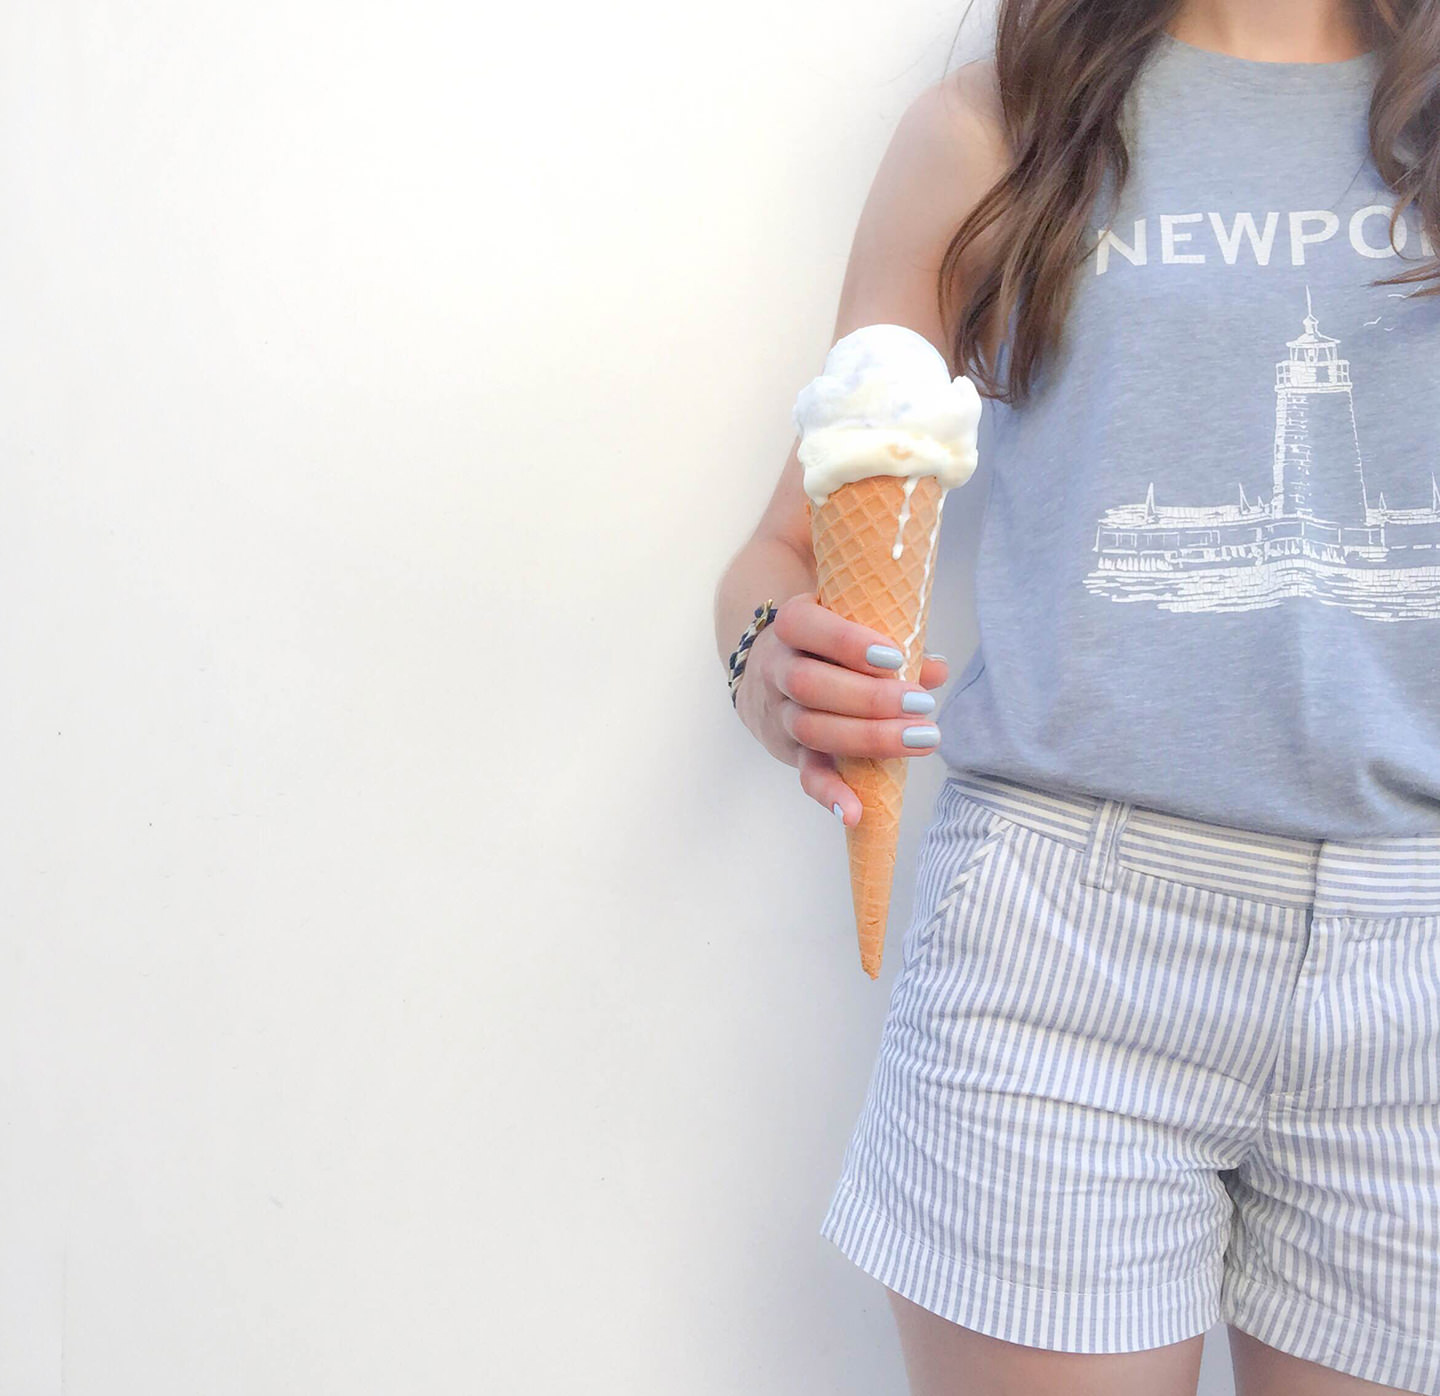 Blog-Mode-And-The-City-lifestyle-cinq-petites-choses-144-glace-andernos